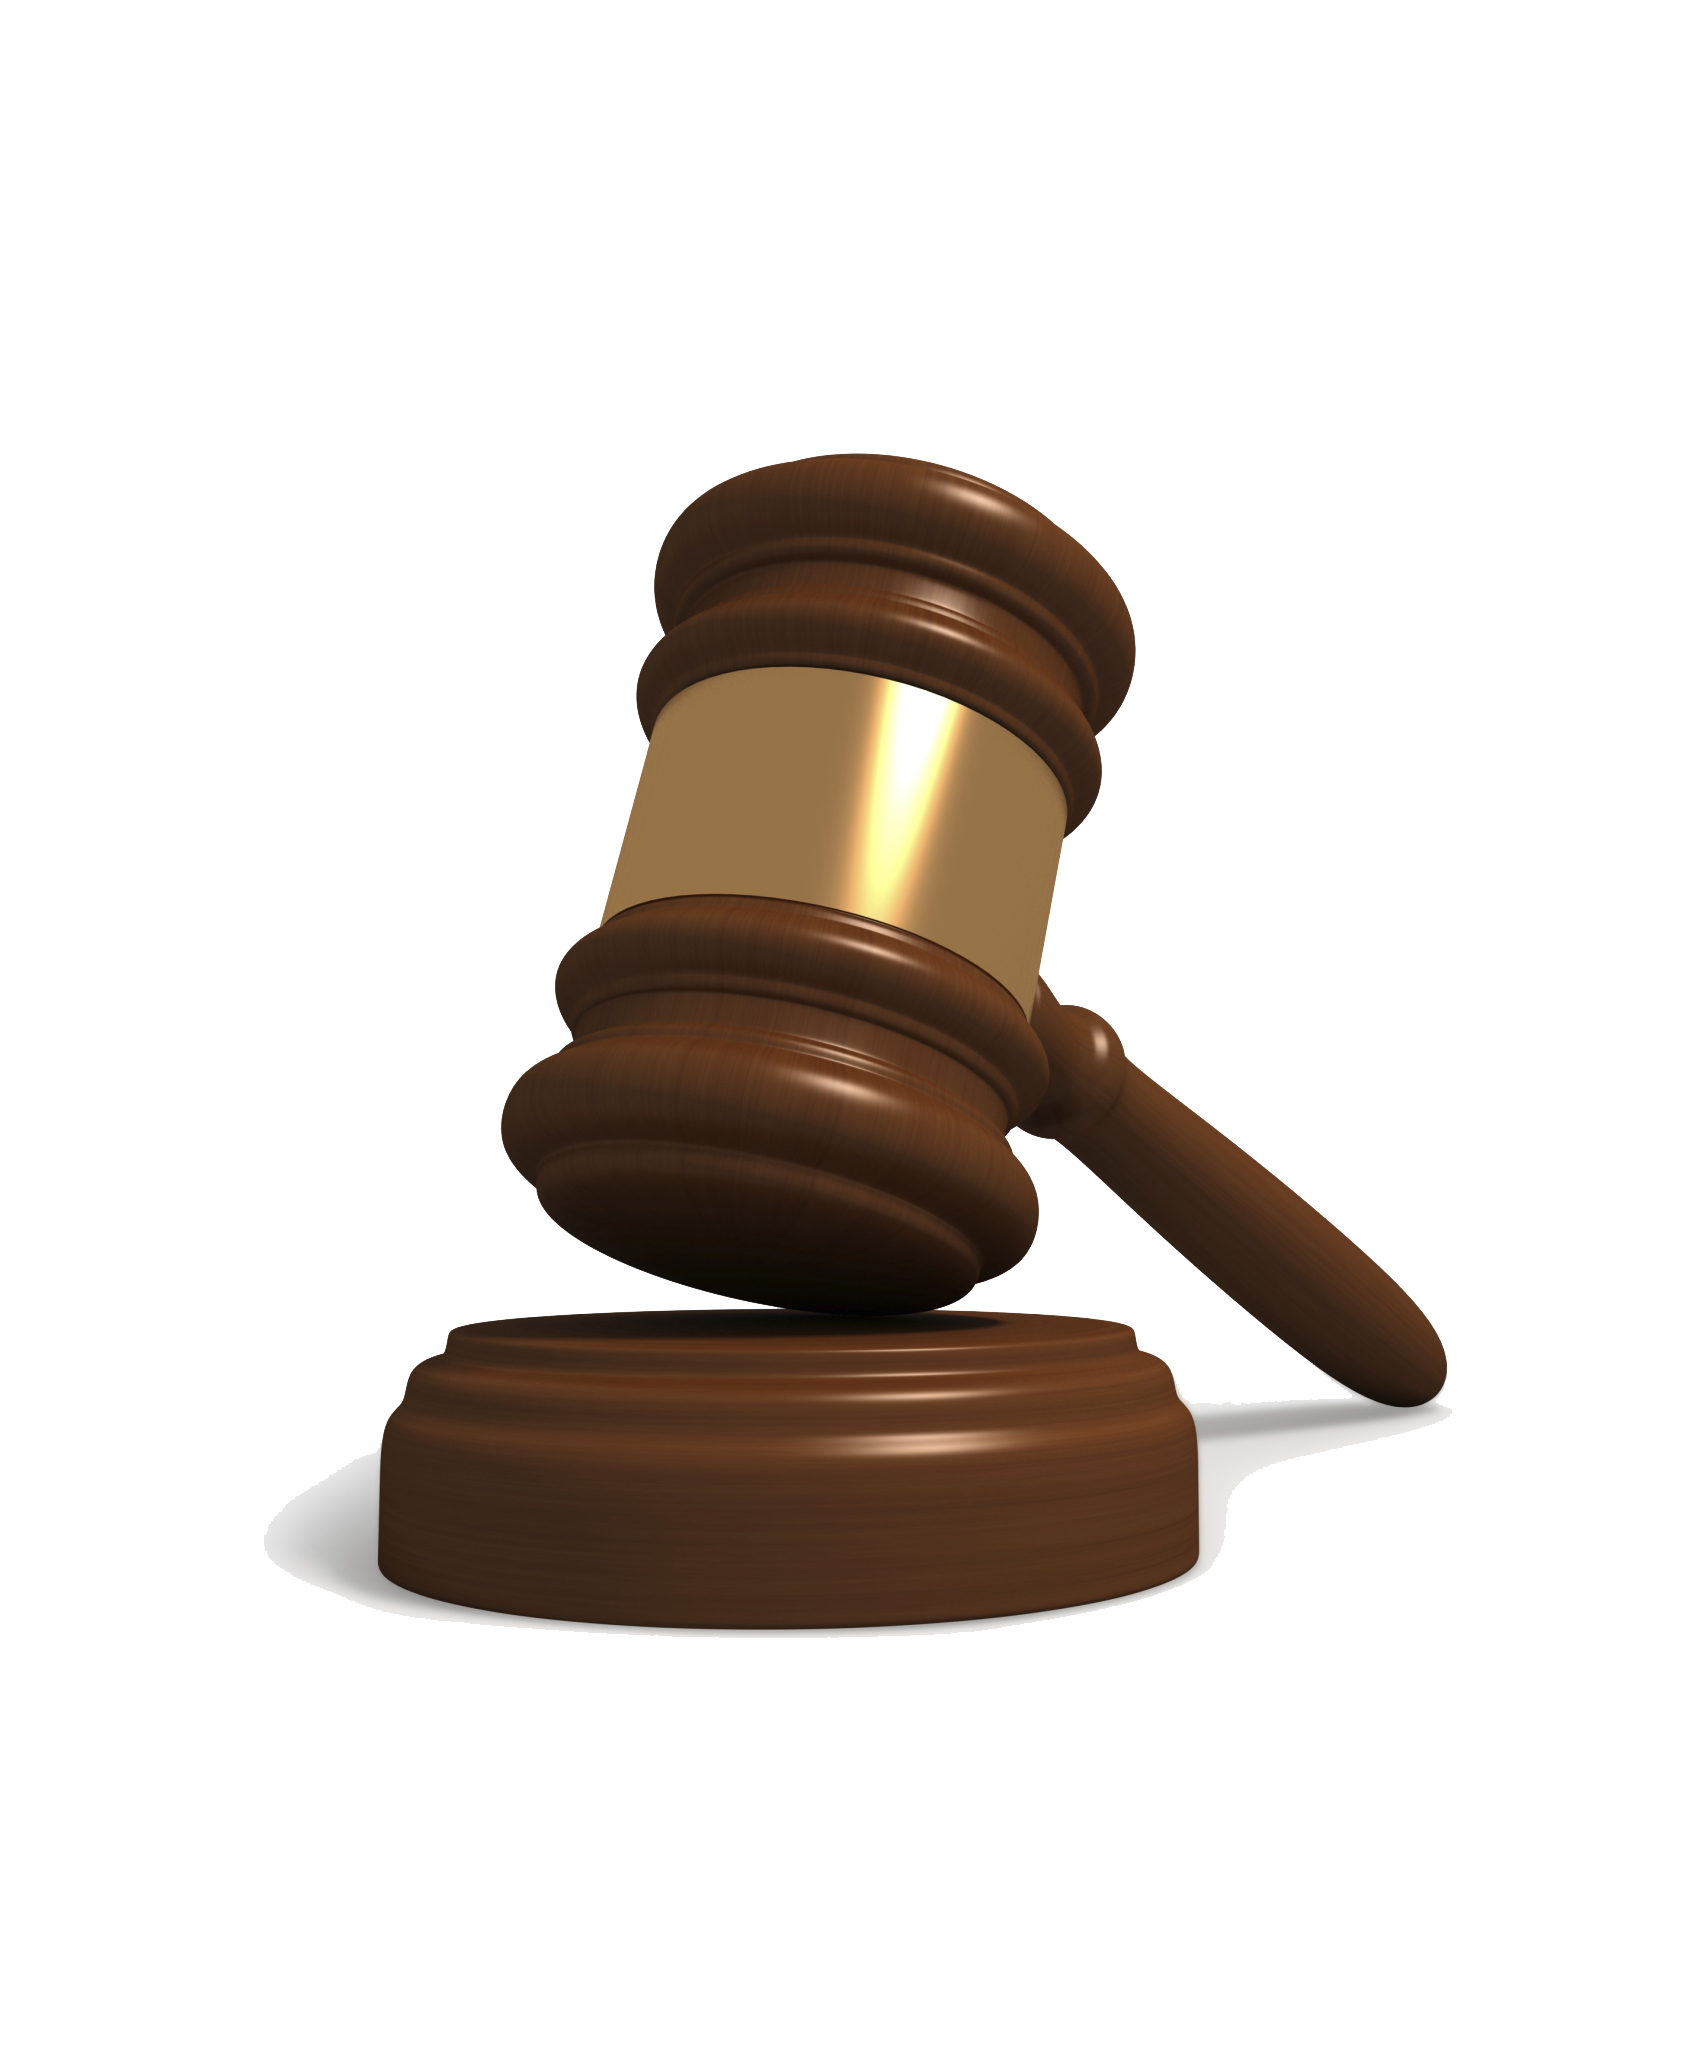 Court-Hammer-PNG-Pic